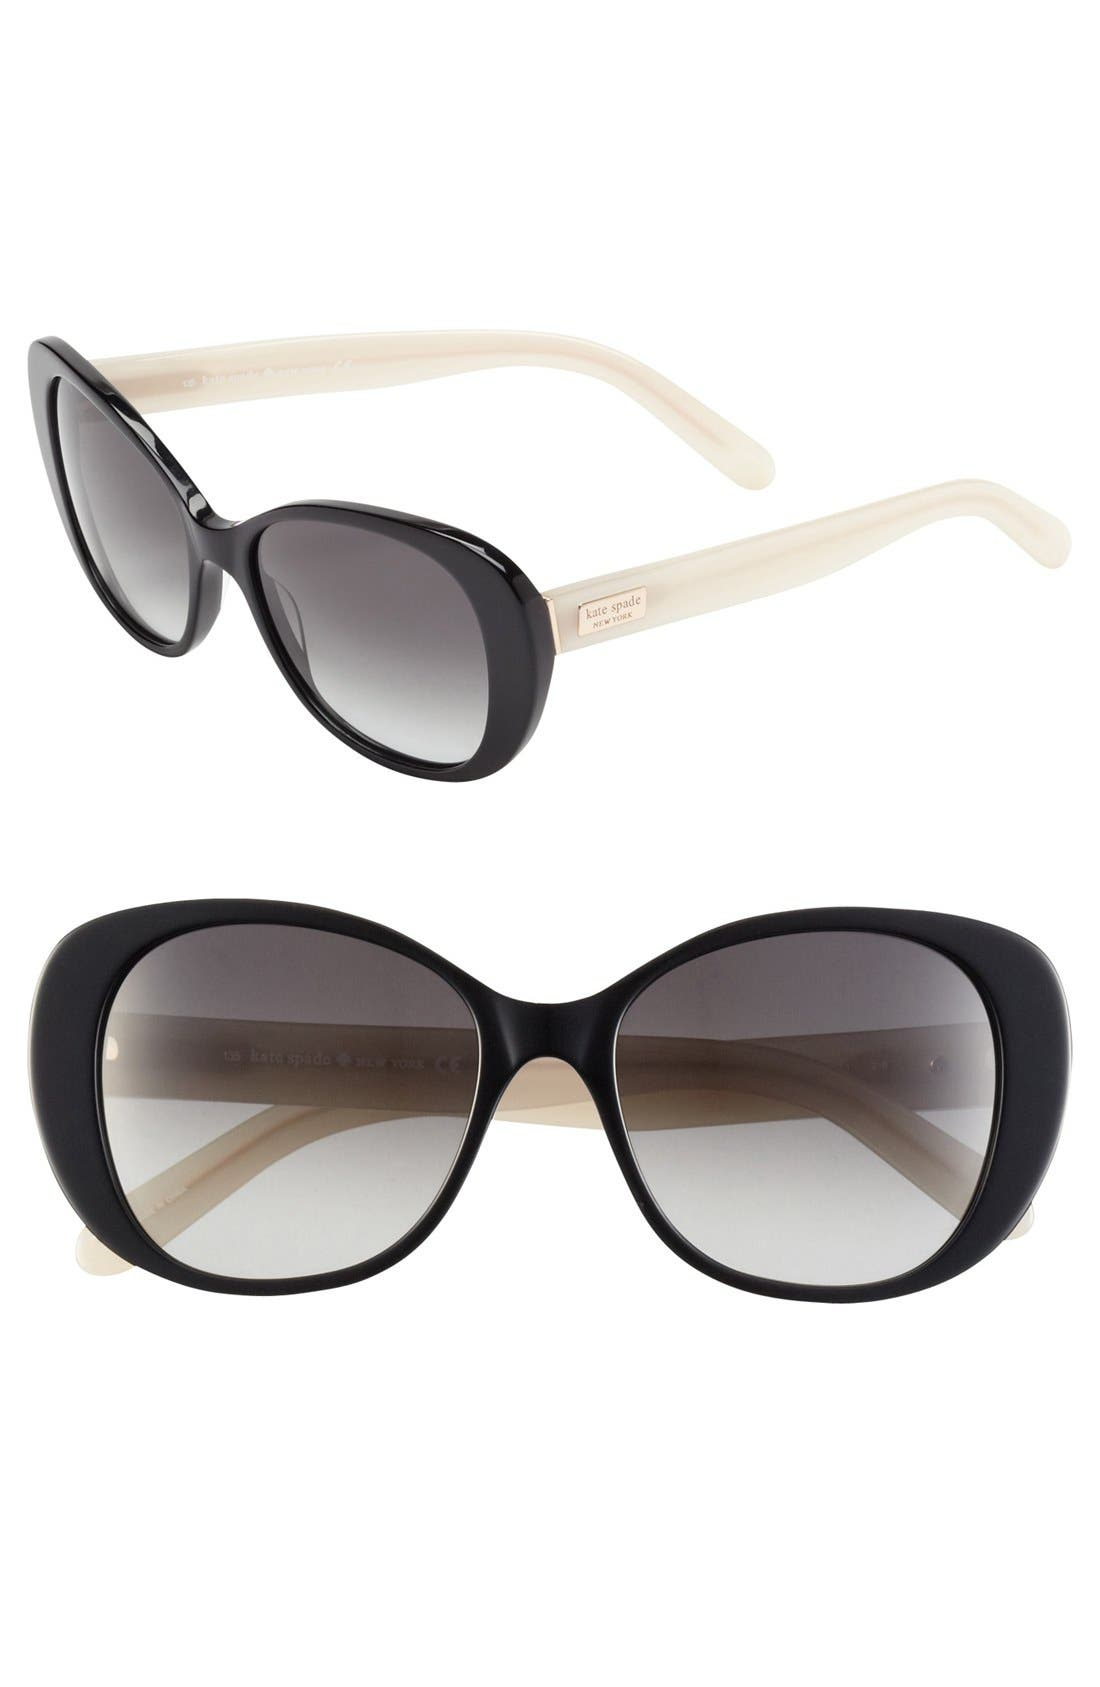 Alternate Image 1 Selected - kate spade new york 'emery' 52mm sunglasses